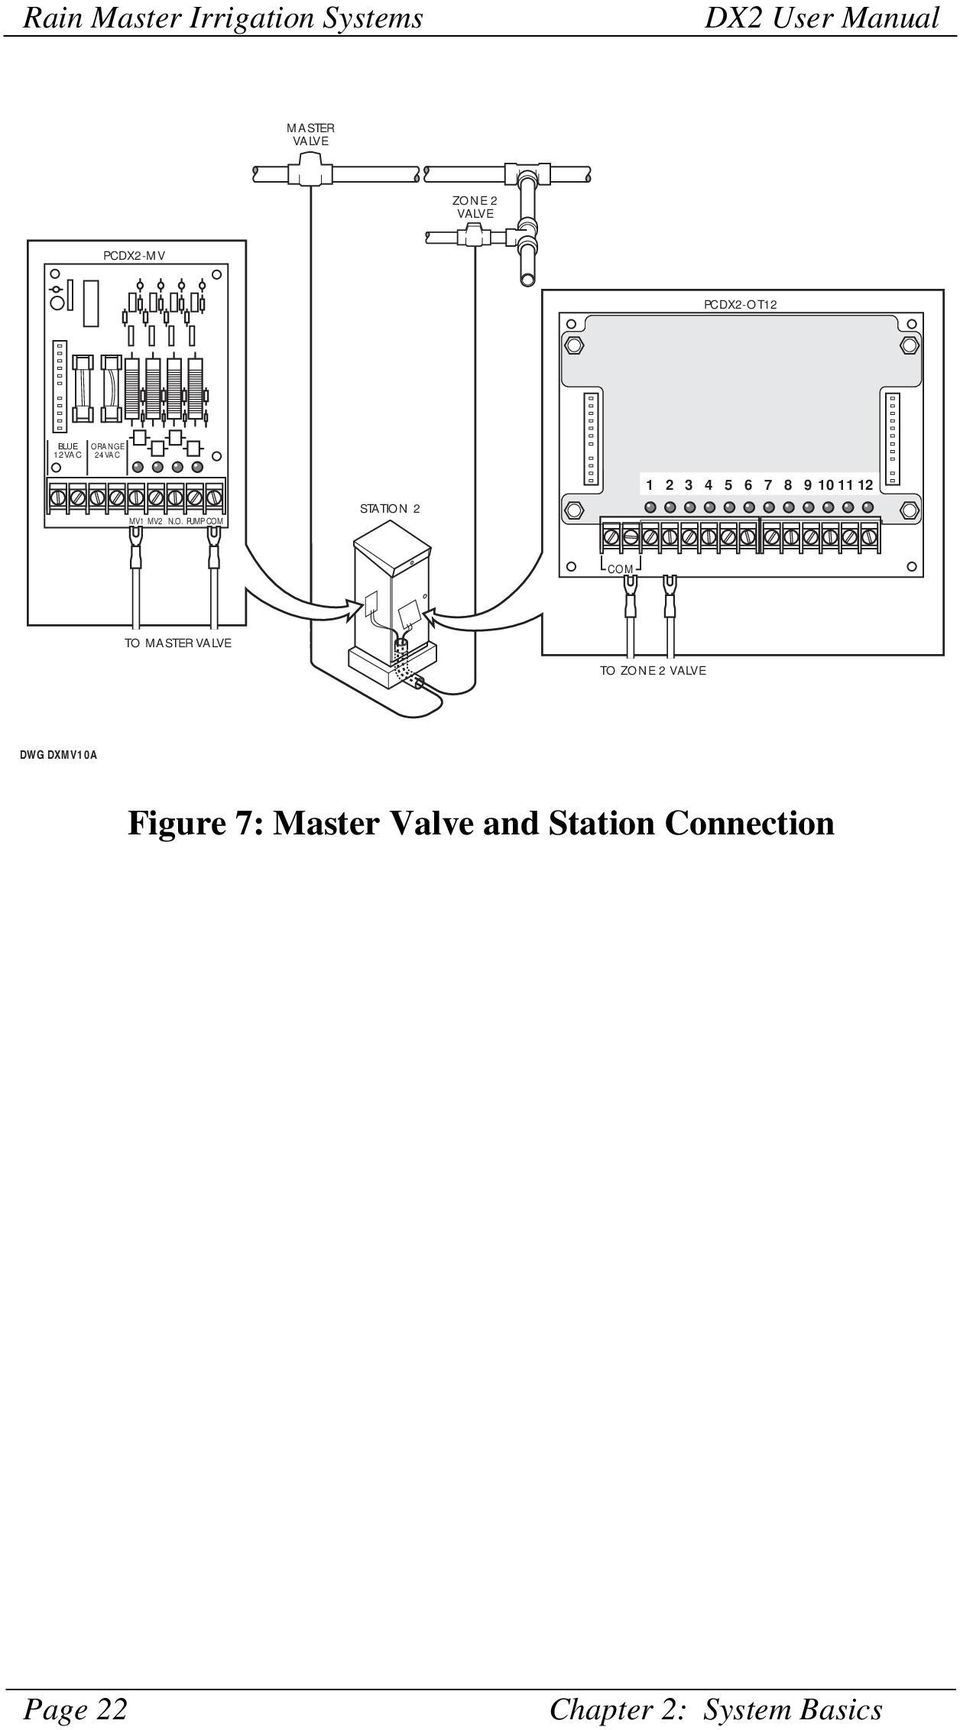 Chapter 2 System Basics Pdf Tofrequenc Y Transconducer Circuit Diagram Tradeoficcom Pump Com Station 1 3 4 5 6 7 8 9 10 11 12